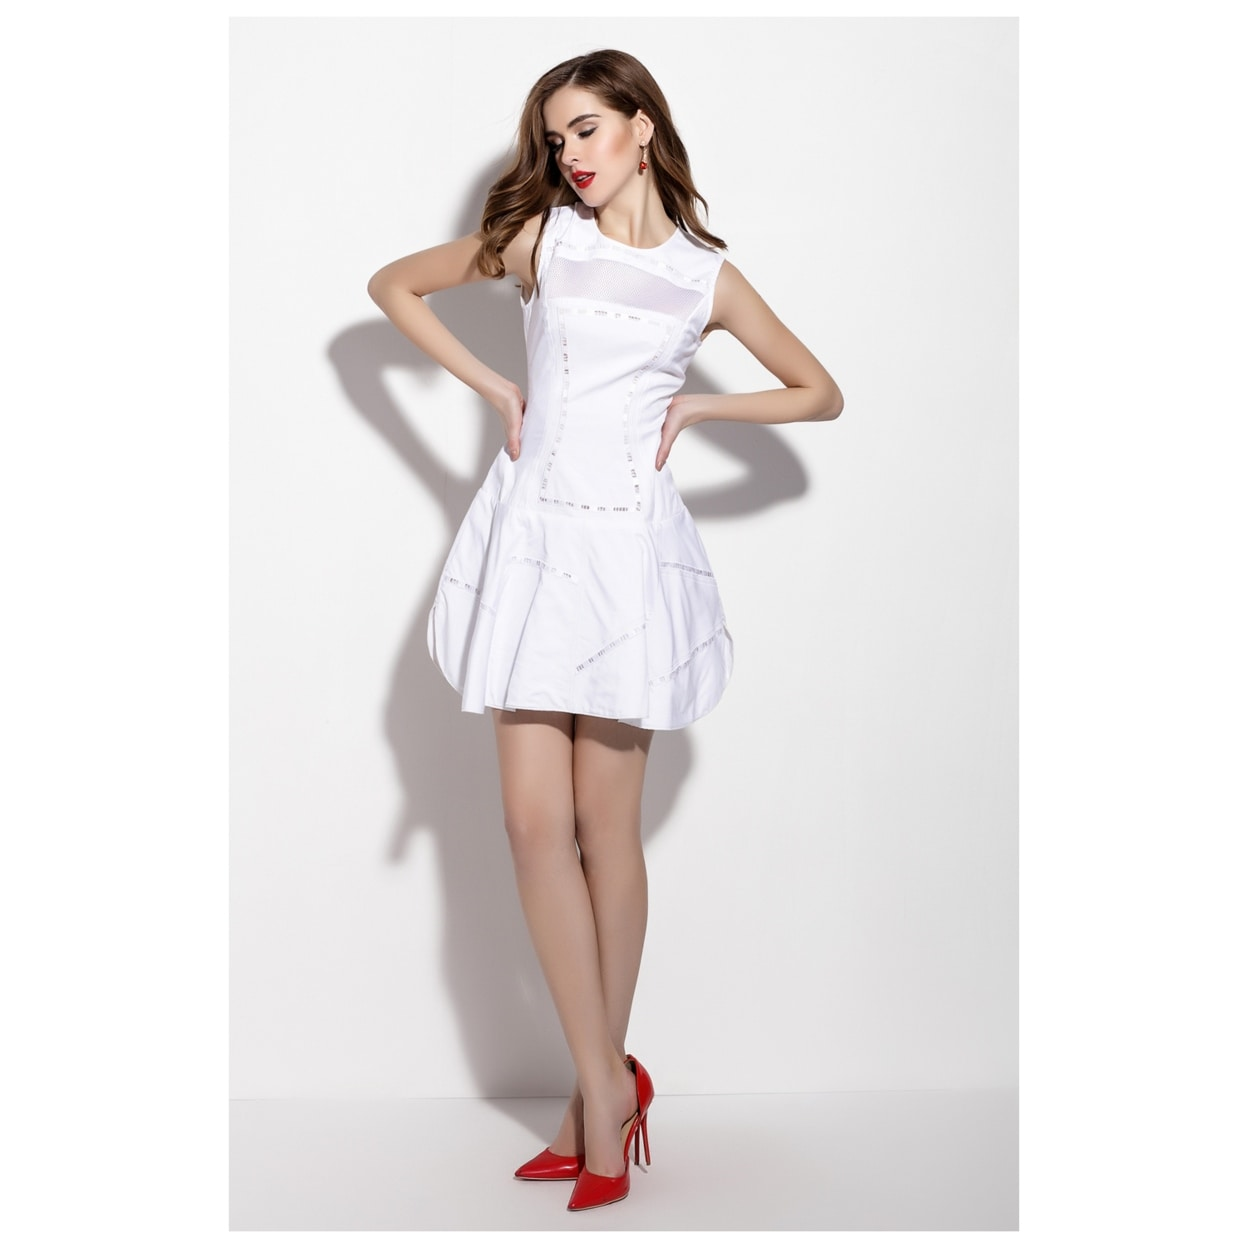 5158dd8858e5 Shop Simple White Embellished Sleeveless Fit And Flare Skater Dress ...